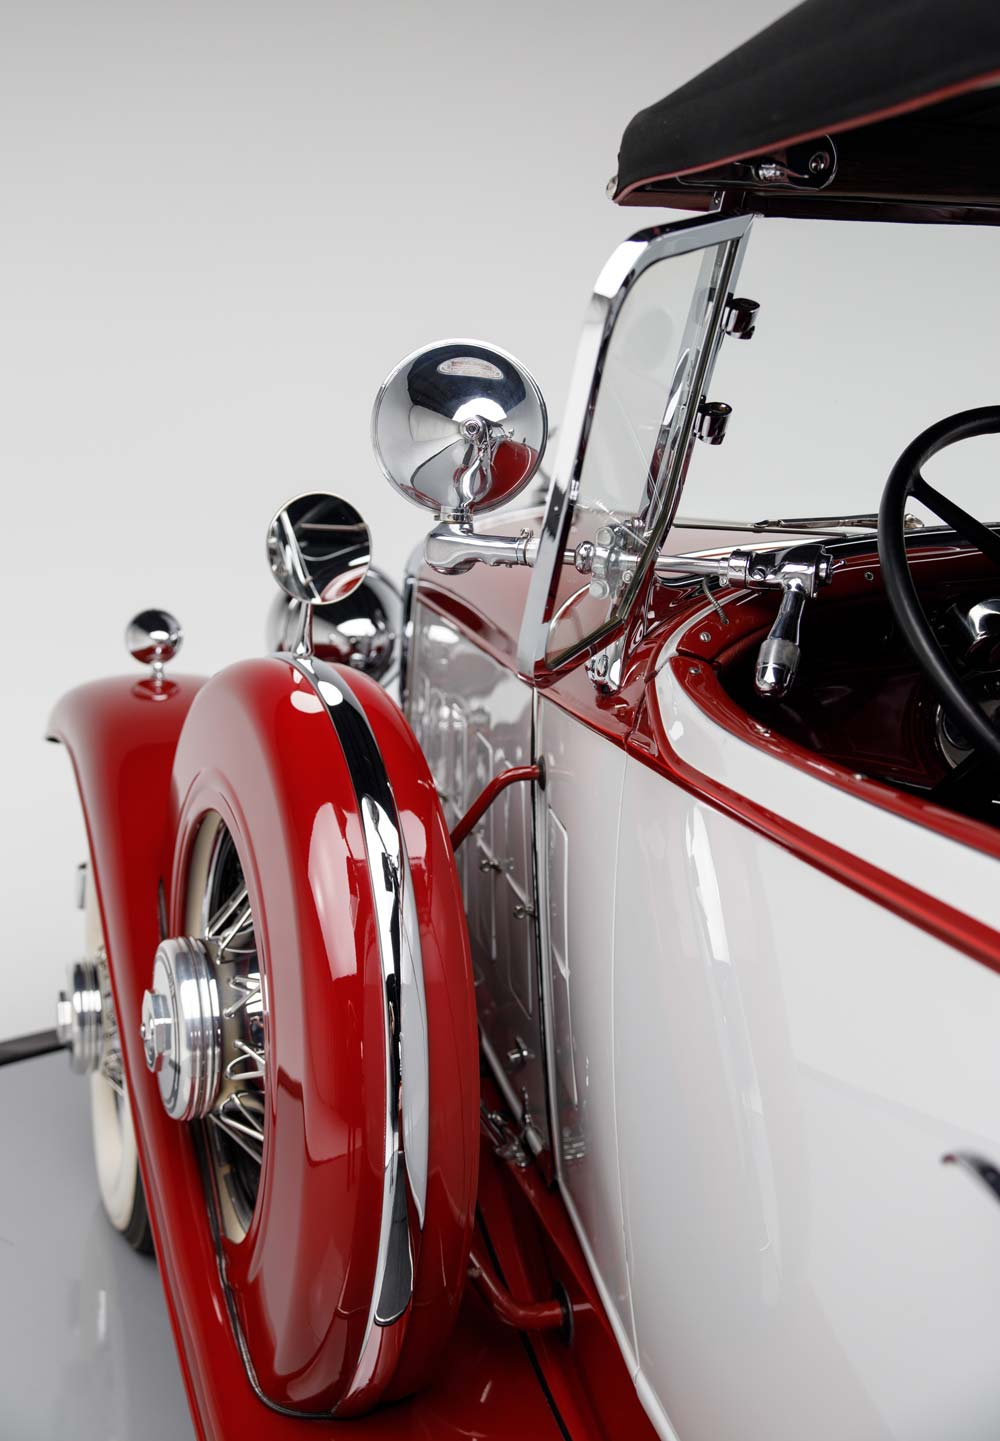 1931 Cadillac 335A Dual Cowl Phaeton - The JBS Collection